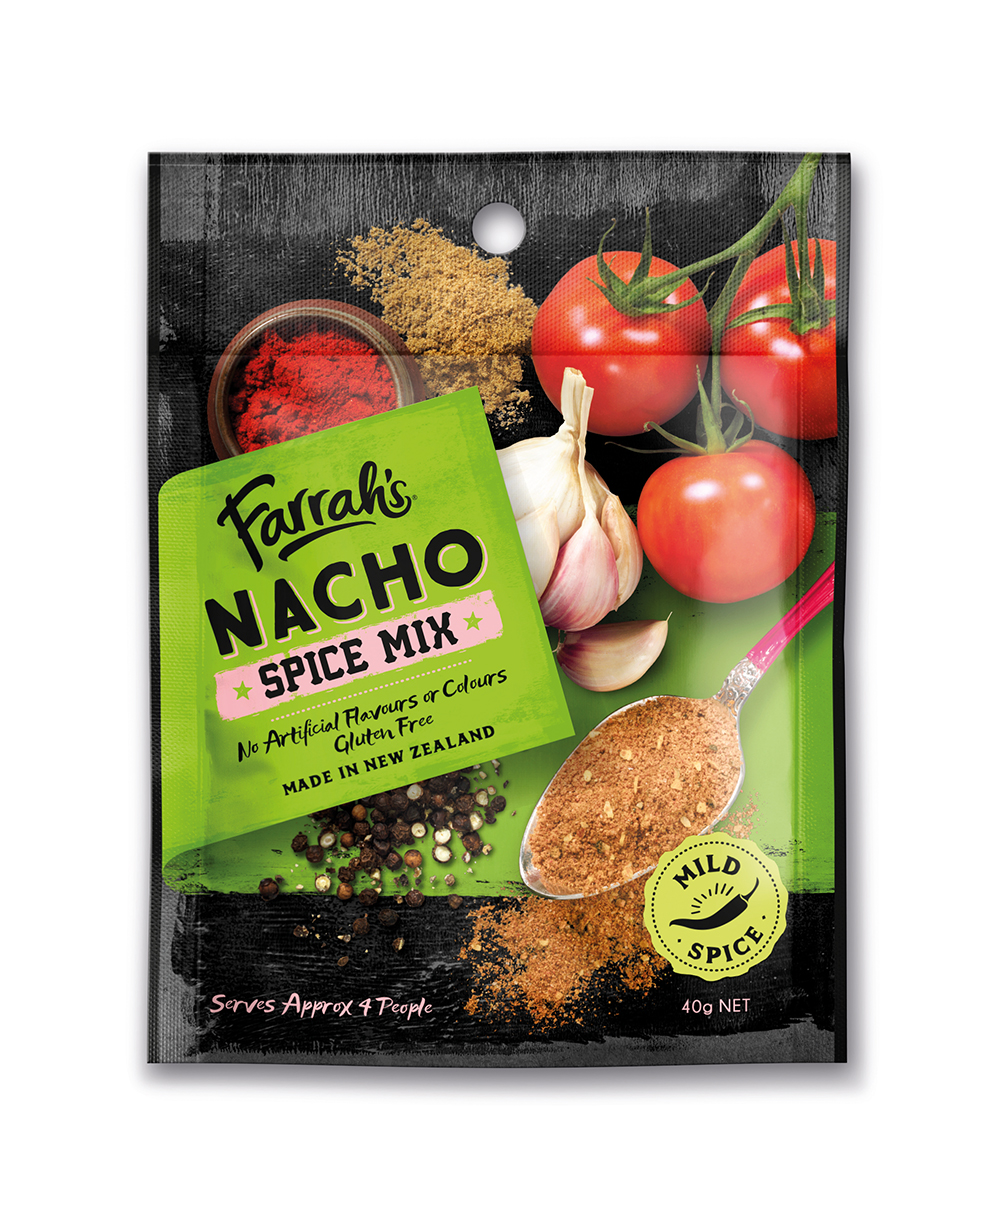 nacho spice mix